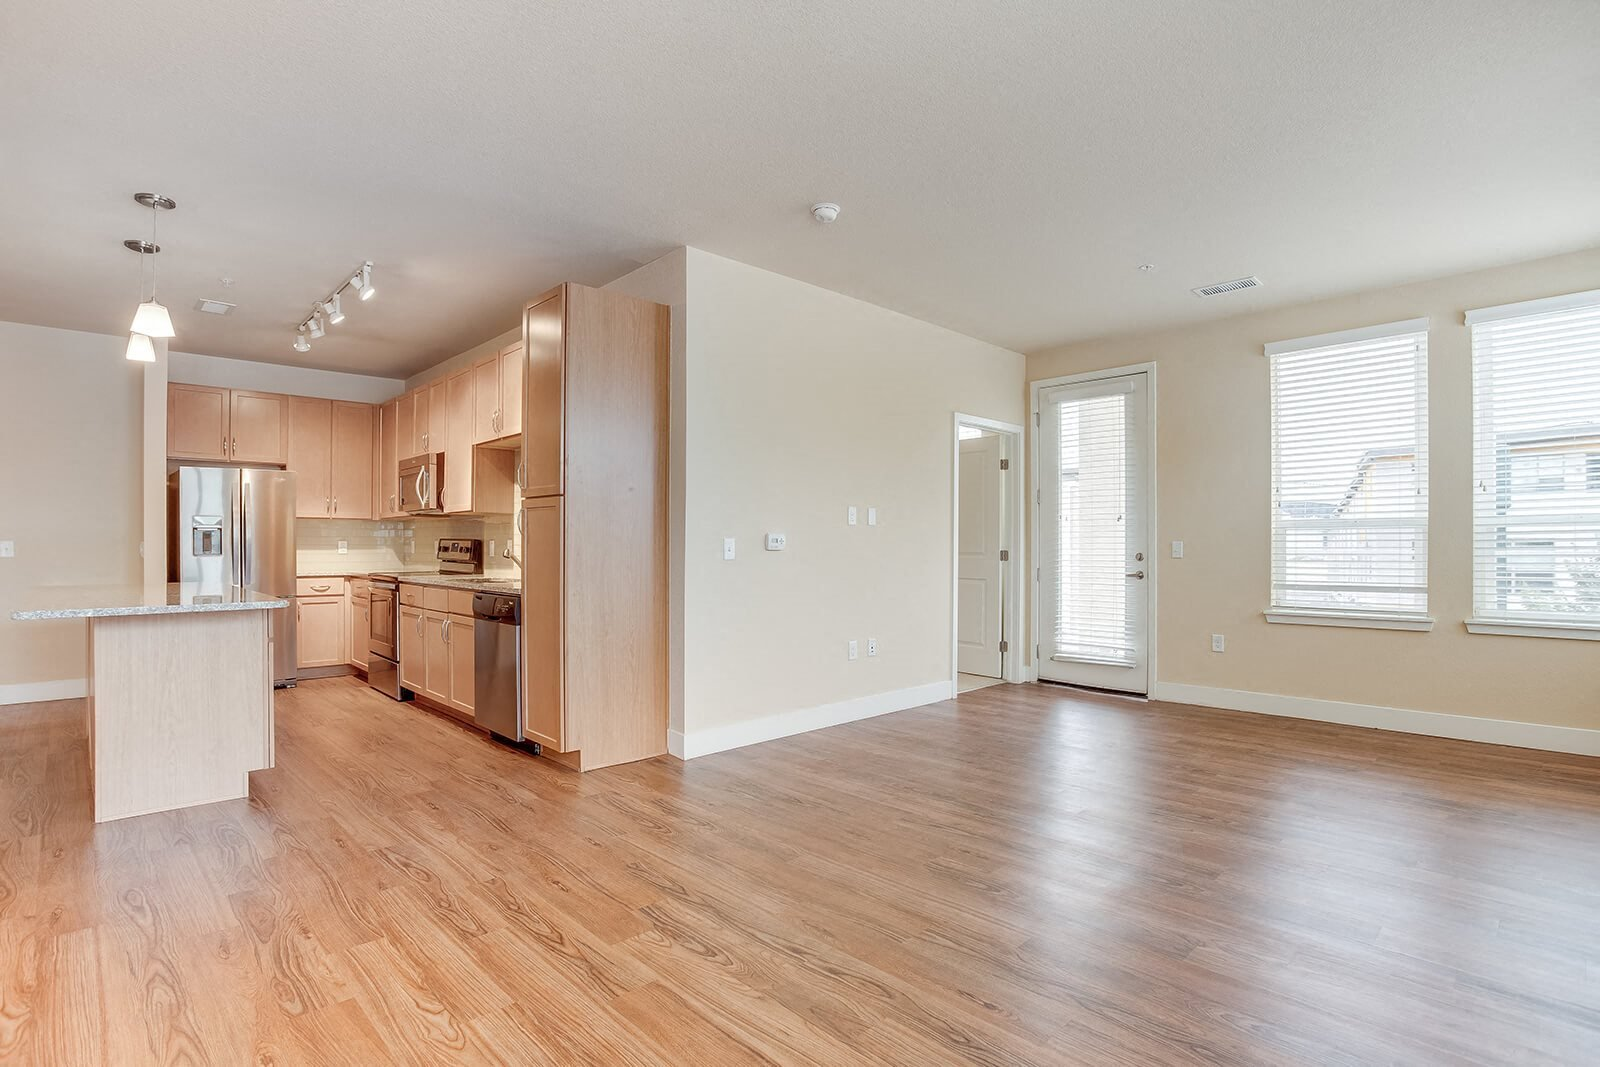 Wood Floors in Living Space at Element 47 by Windsor, 2180 N. Bryant St., Denver